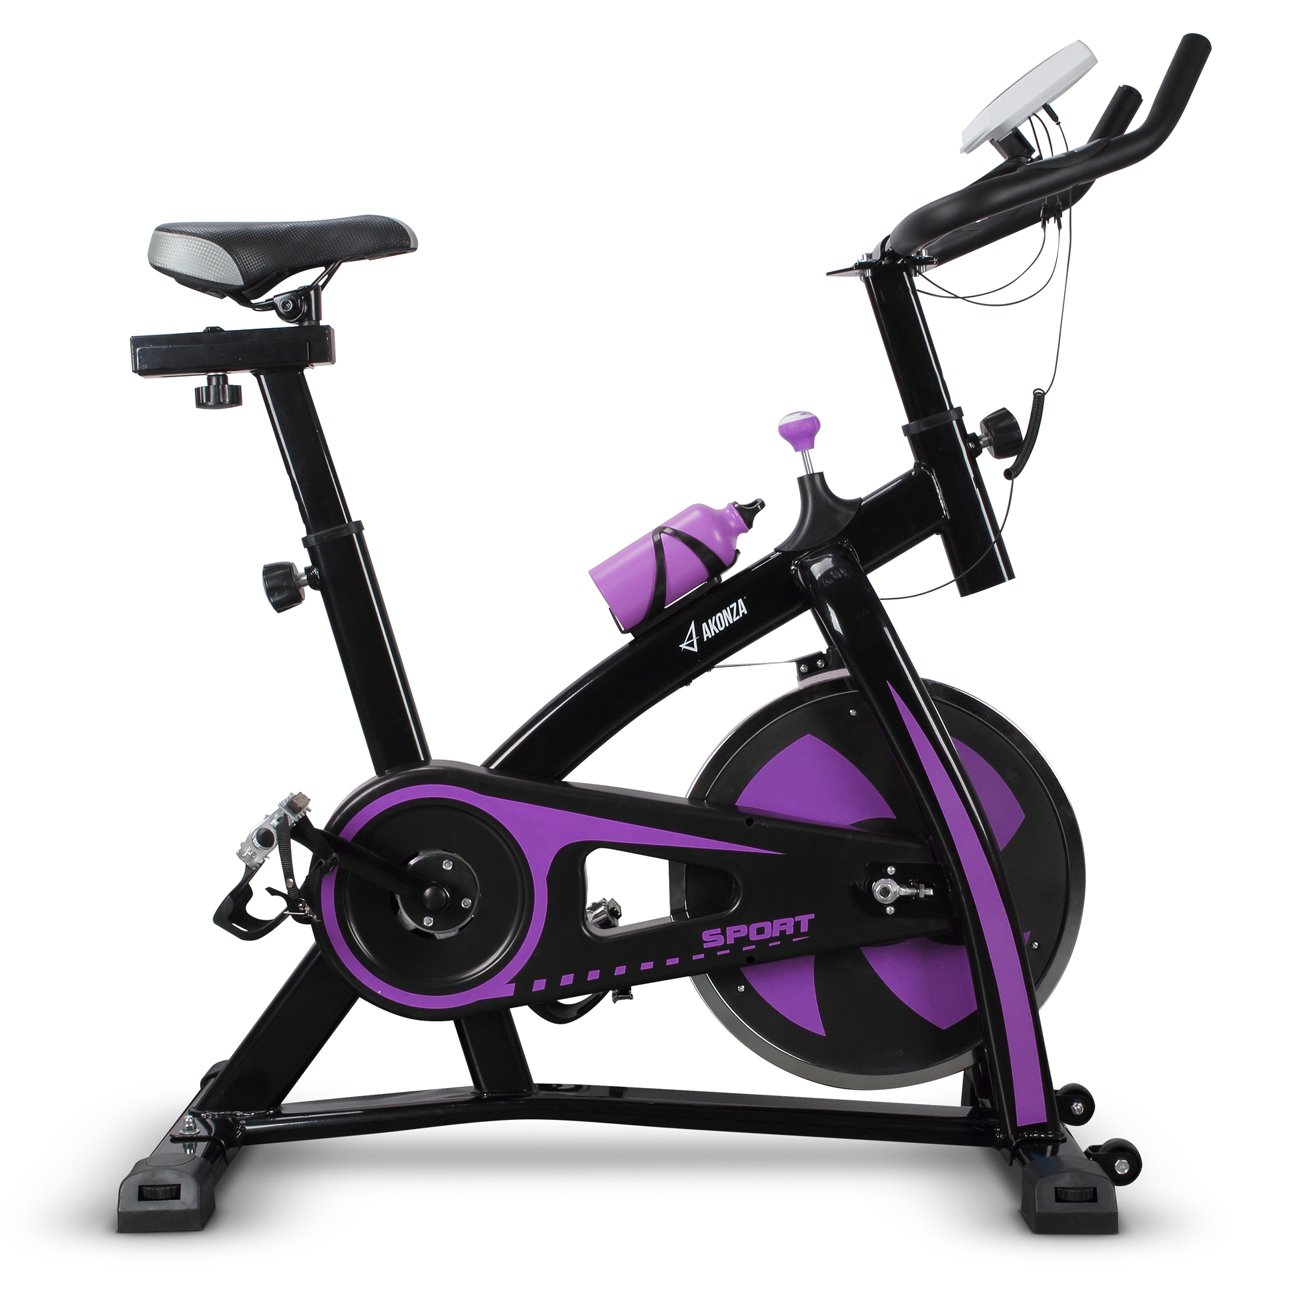 AKONZA Adjustable Stationary Indoor Cycling Bike,with Heart Pulse Sensors & LCD Monitor, Max User Weight:330lbs, Purple